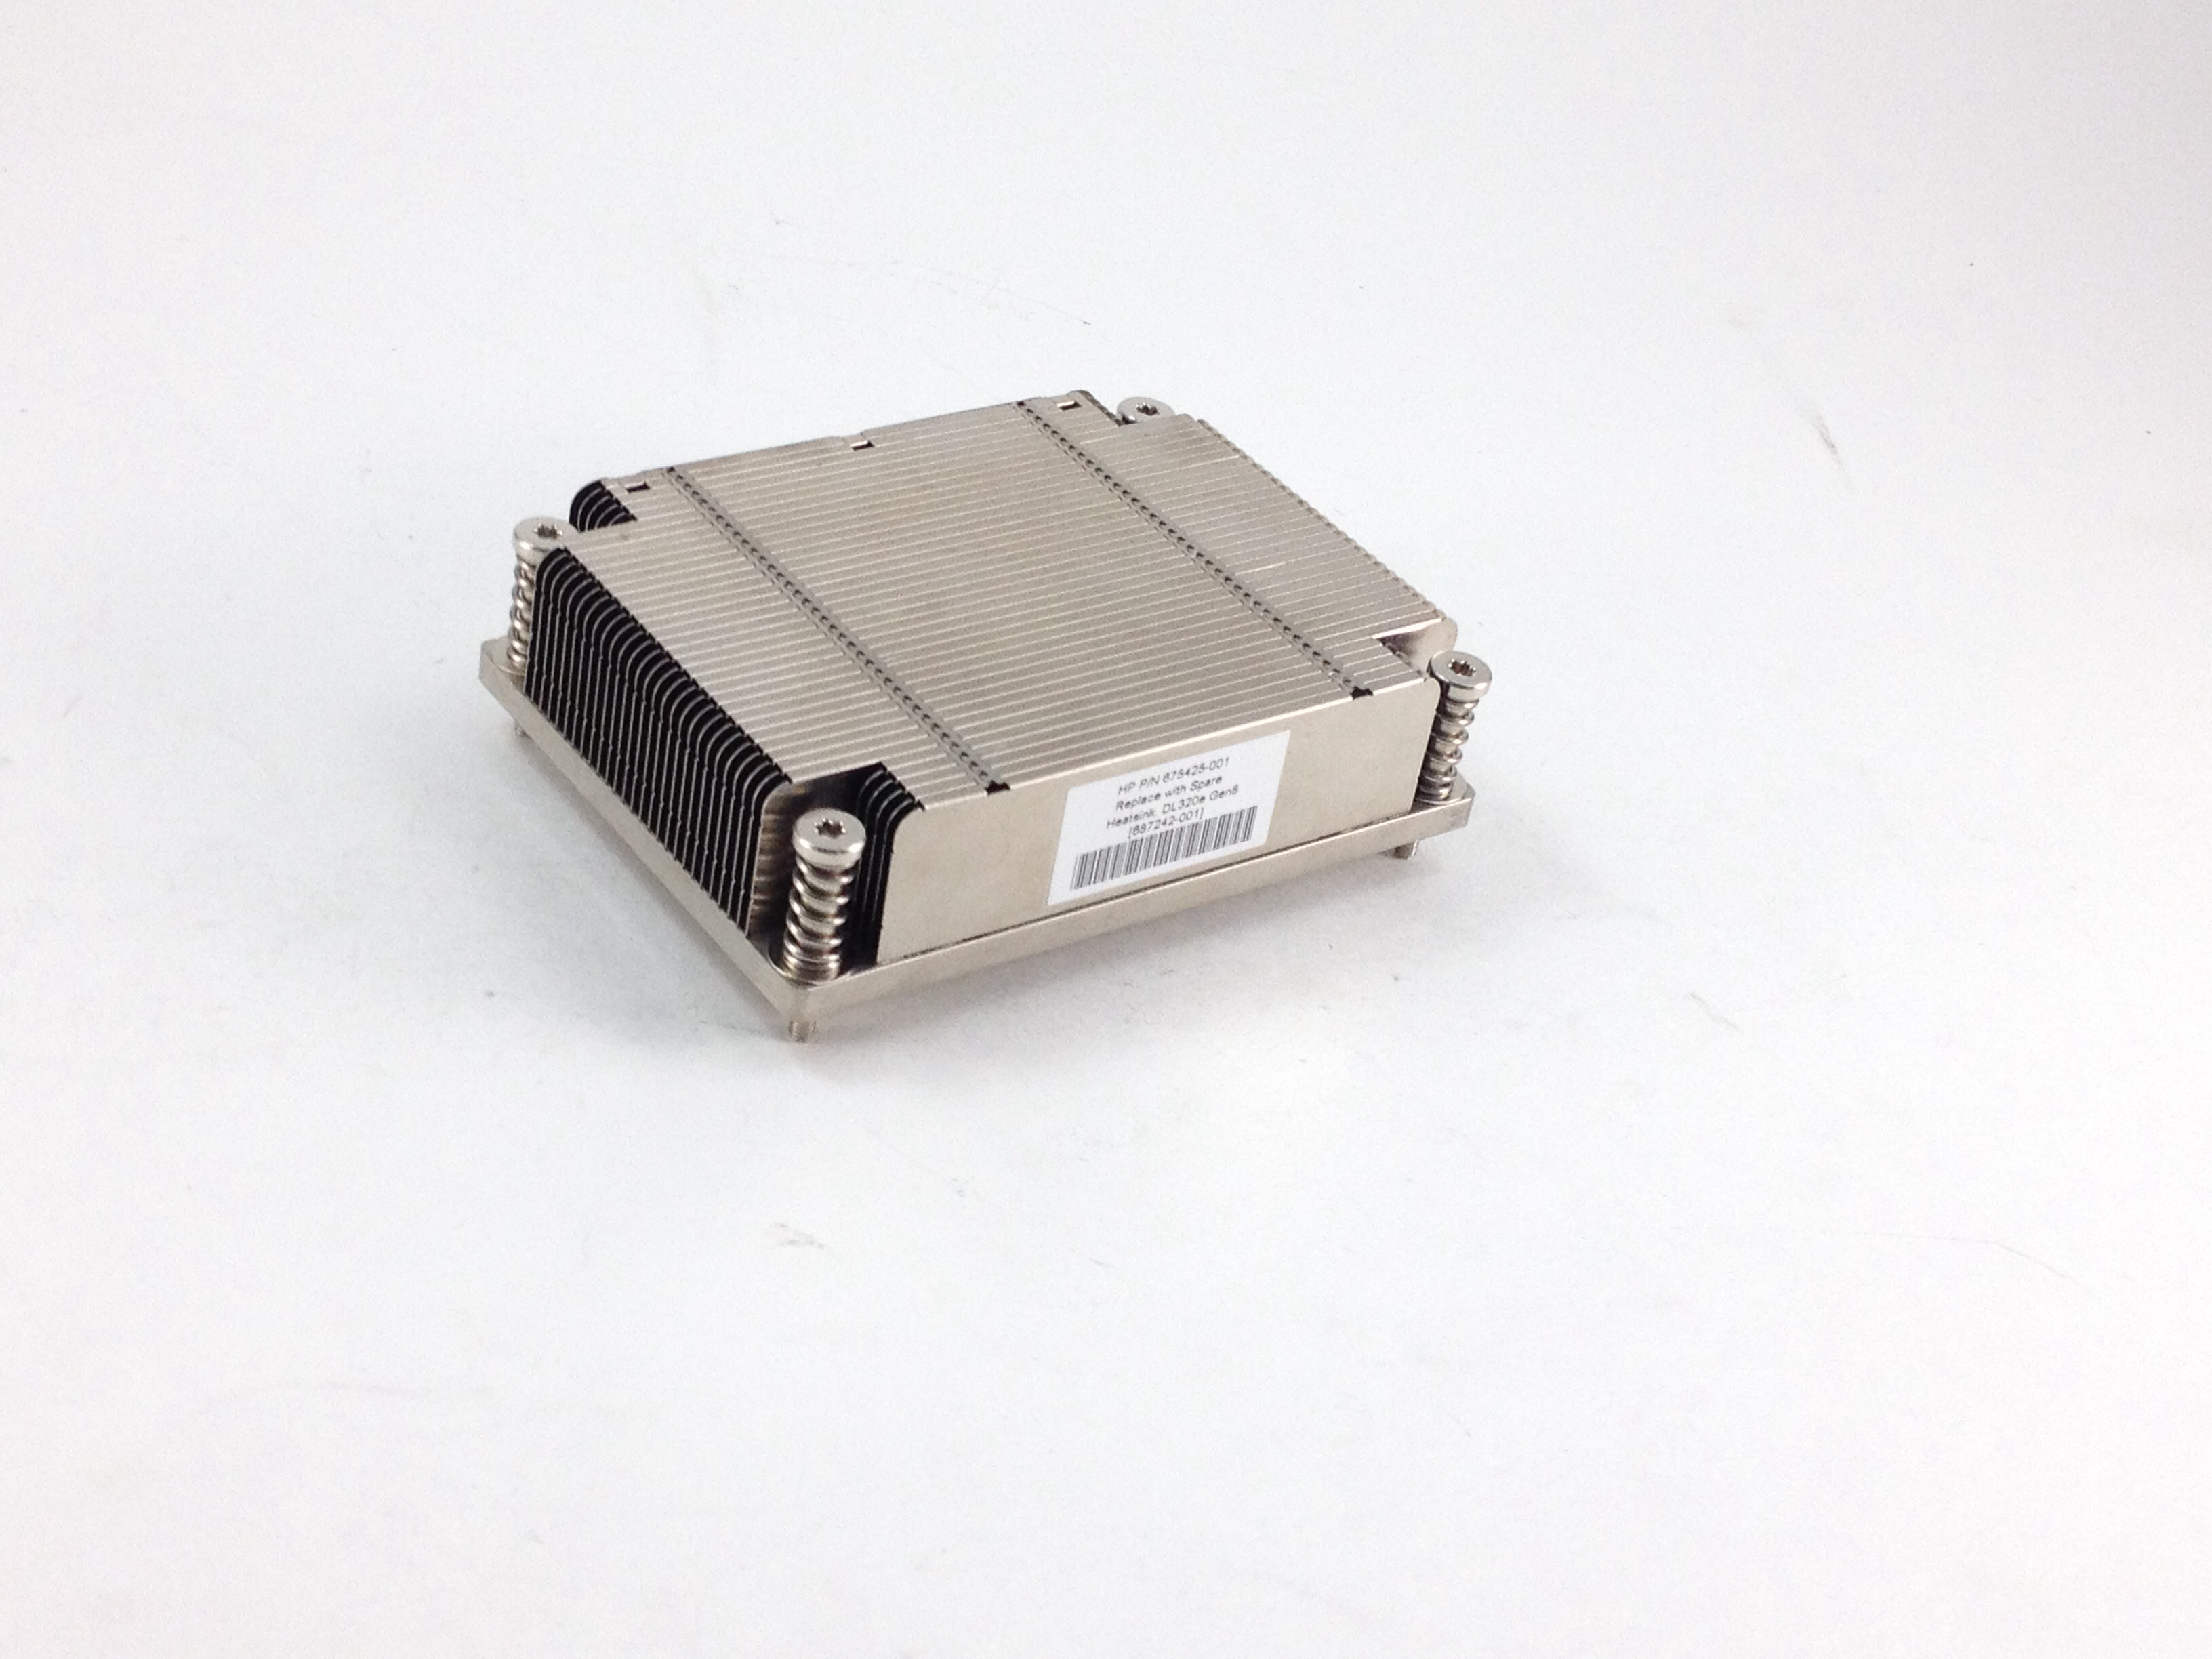 HP Proliant DL320E Gen8 Heatsink (687242-001)